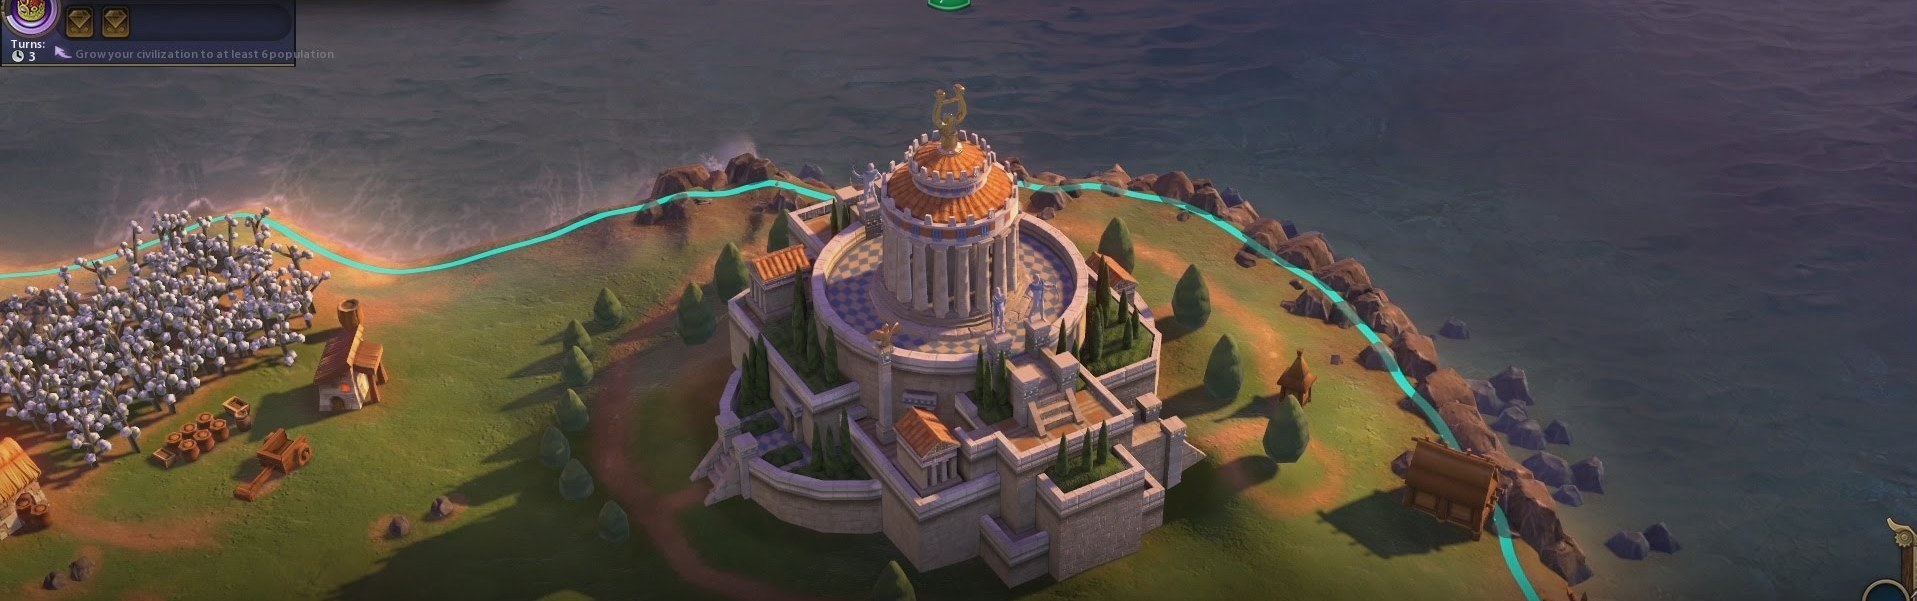 Sid Meier's Civilization VI Digital Deluxe Edition Steam Key UNITED STATES